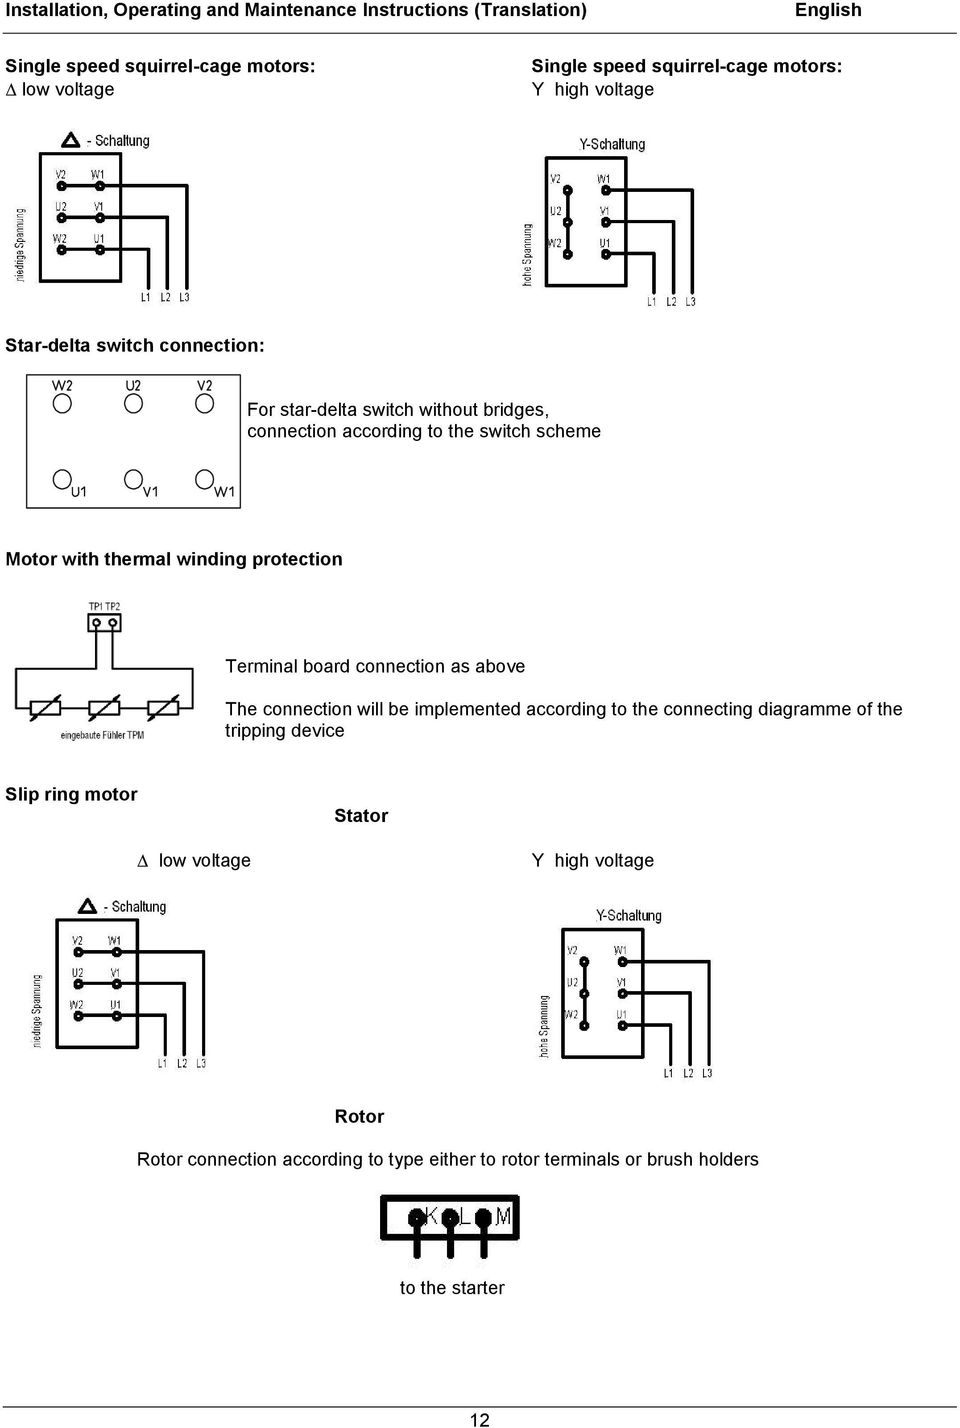 Installation, operating and maintenance instructions. Three ... on electric motor wiring connections, ac motor diagram, electric motor winding diagram, electric motoes, electric motor wire colors, electric motor armature, electric motor science project, electric motor plug, electric motor 1 hp pump, electric motor schematic, electric motor brushes, simple electric motor diagram, electric motor parts, electric motor control diagram, circuit diagram, electric fan motors, electric motor batteries, dc motor diagram, electric simple dc motor, electric motor wiring color code,